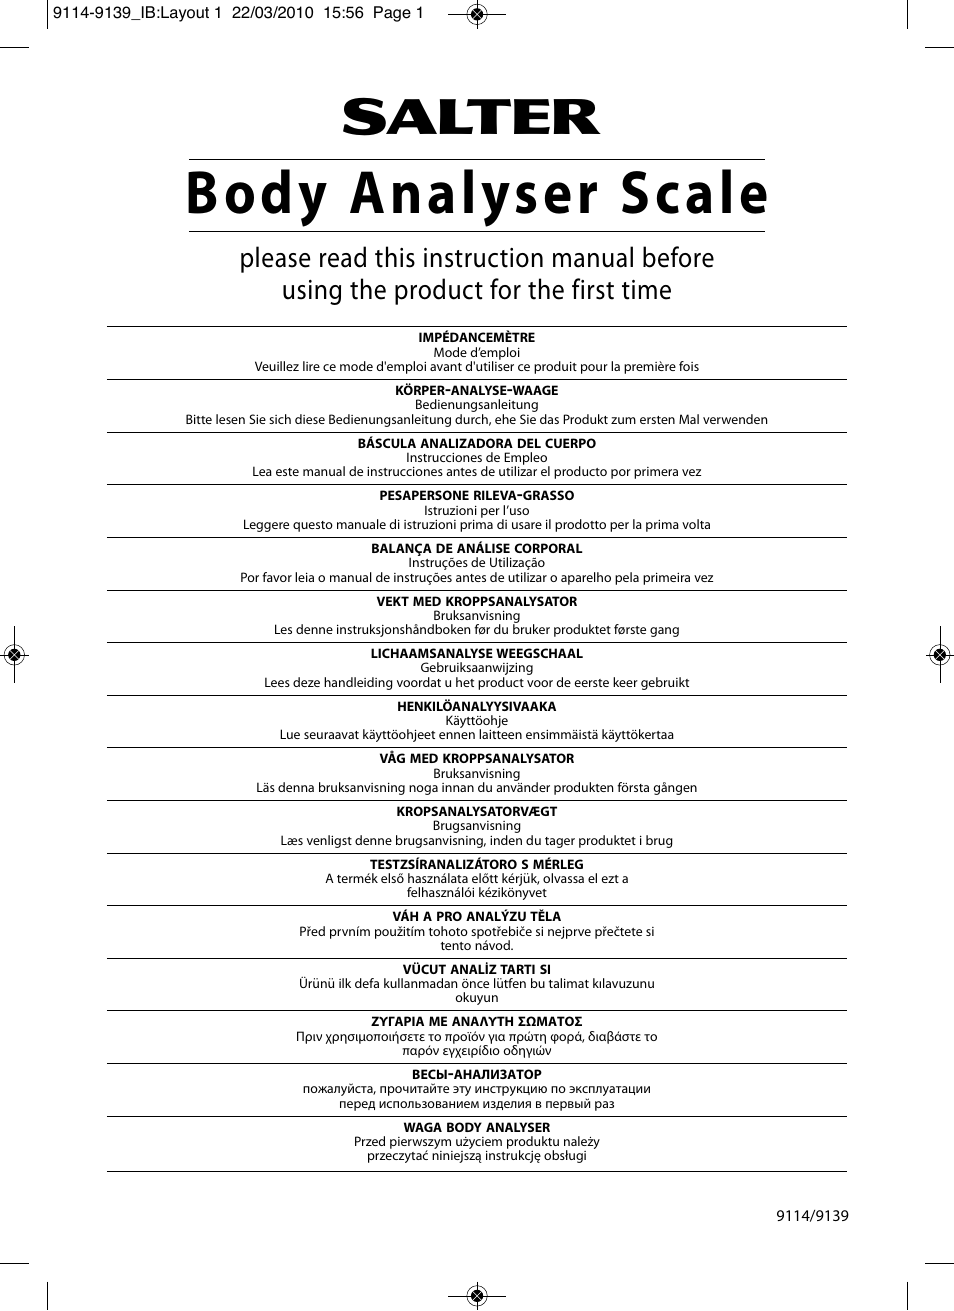 Salter 9139 Wh3r Compact Analyser Scale User Manual 140 Pages